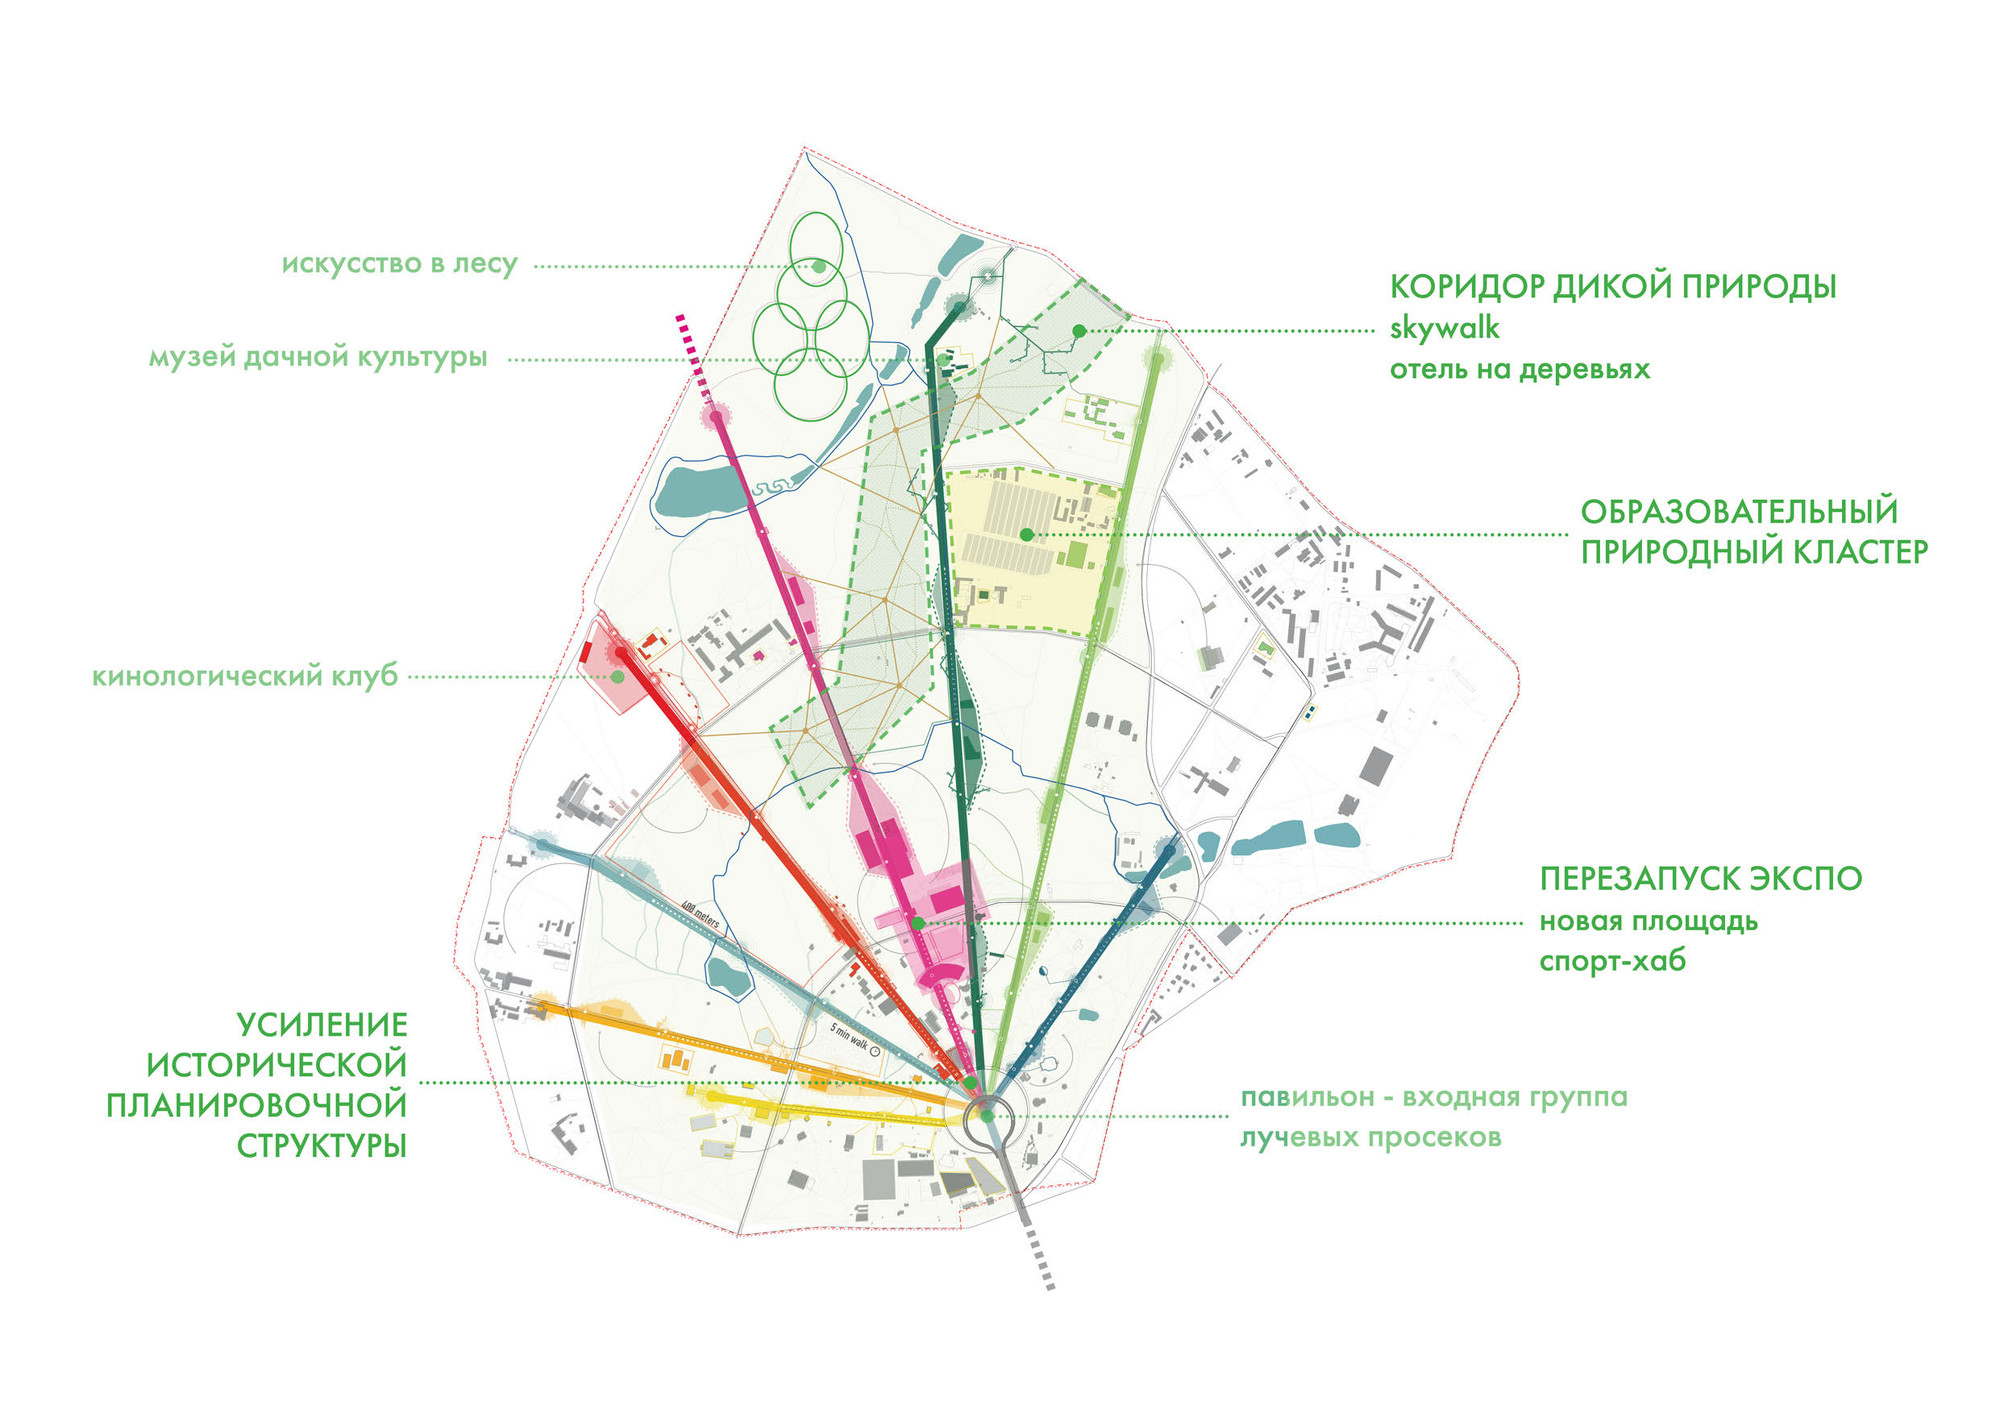 © Groundlab, WOWHAUS and Urbanica, courtesy of Moscow Culture Department